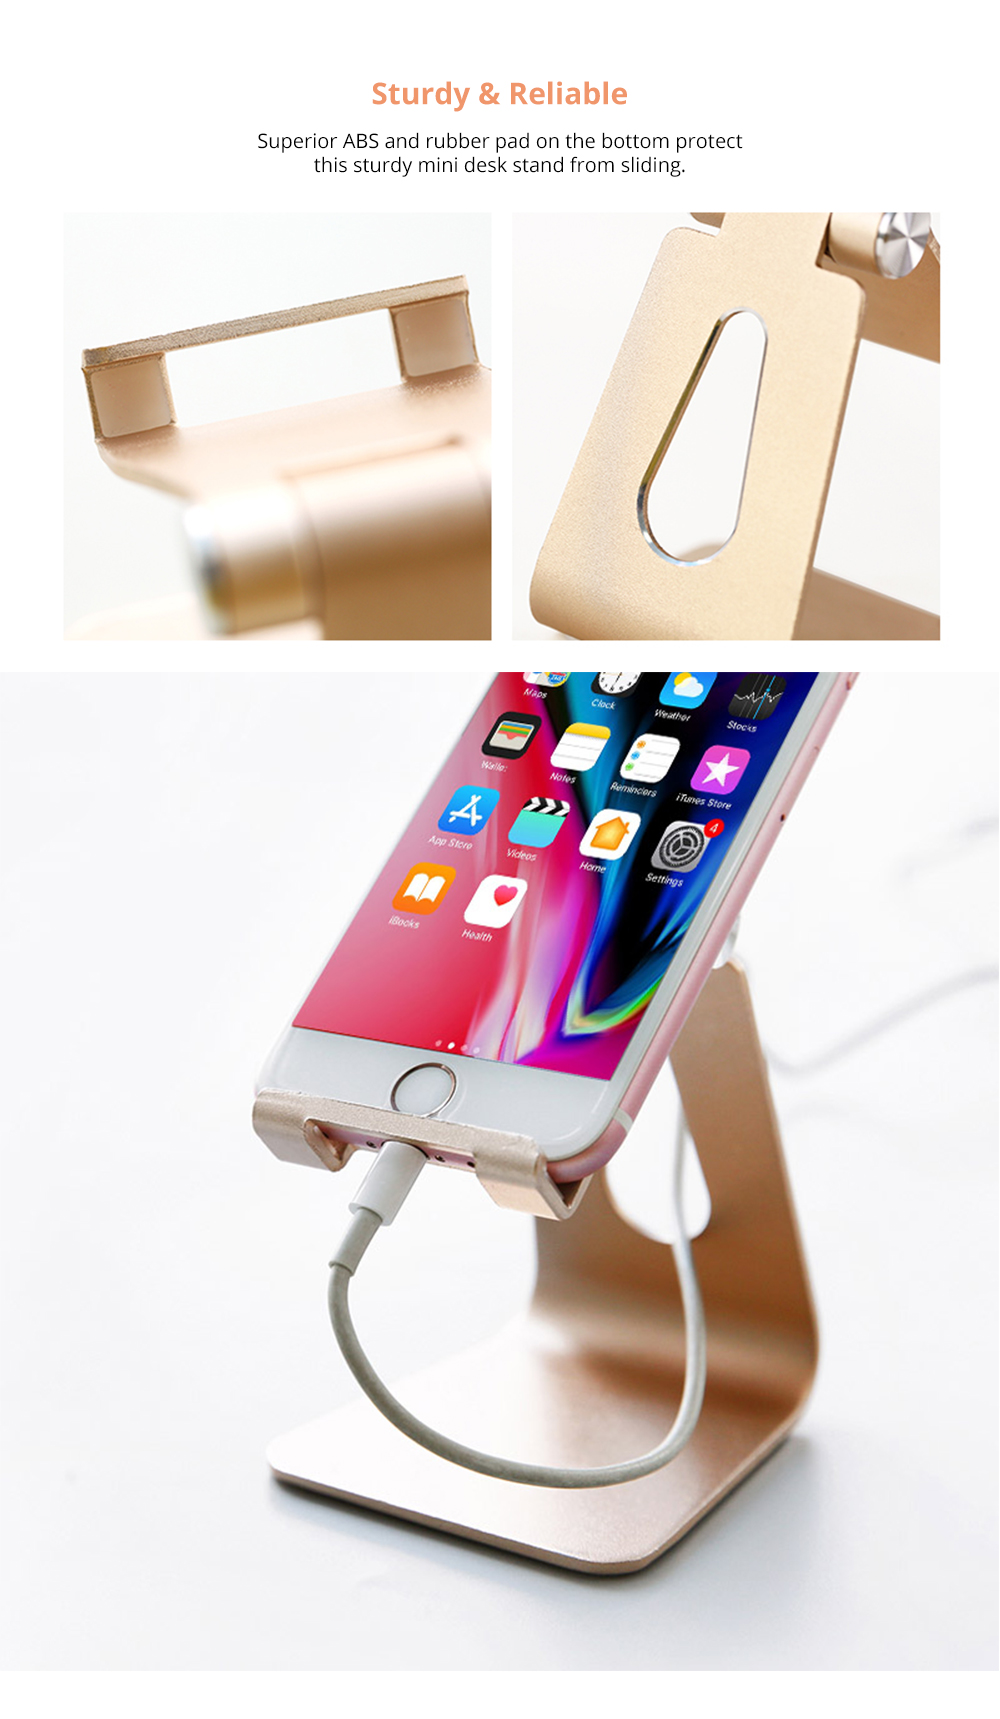 Stylish Adjustable Multi-angle Stand Compatible with iPhone iPad Kindle Android Device 4 inch to 10 inch Universal Hand Free Desktop Stand  9